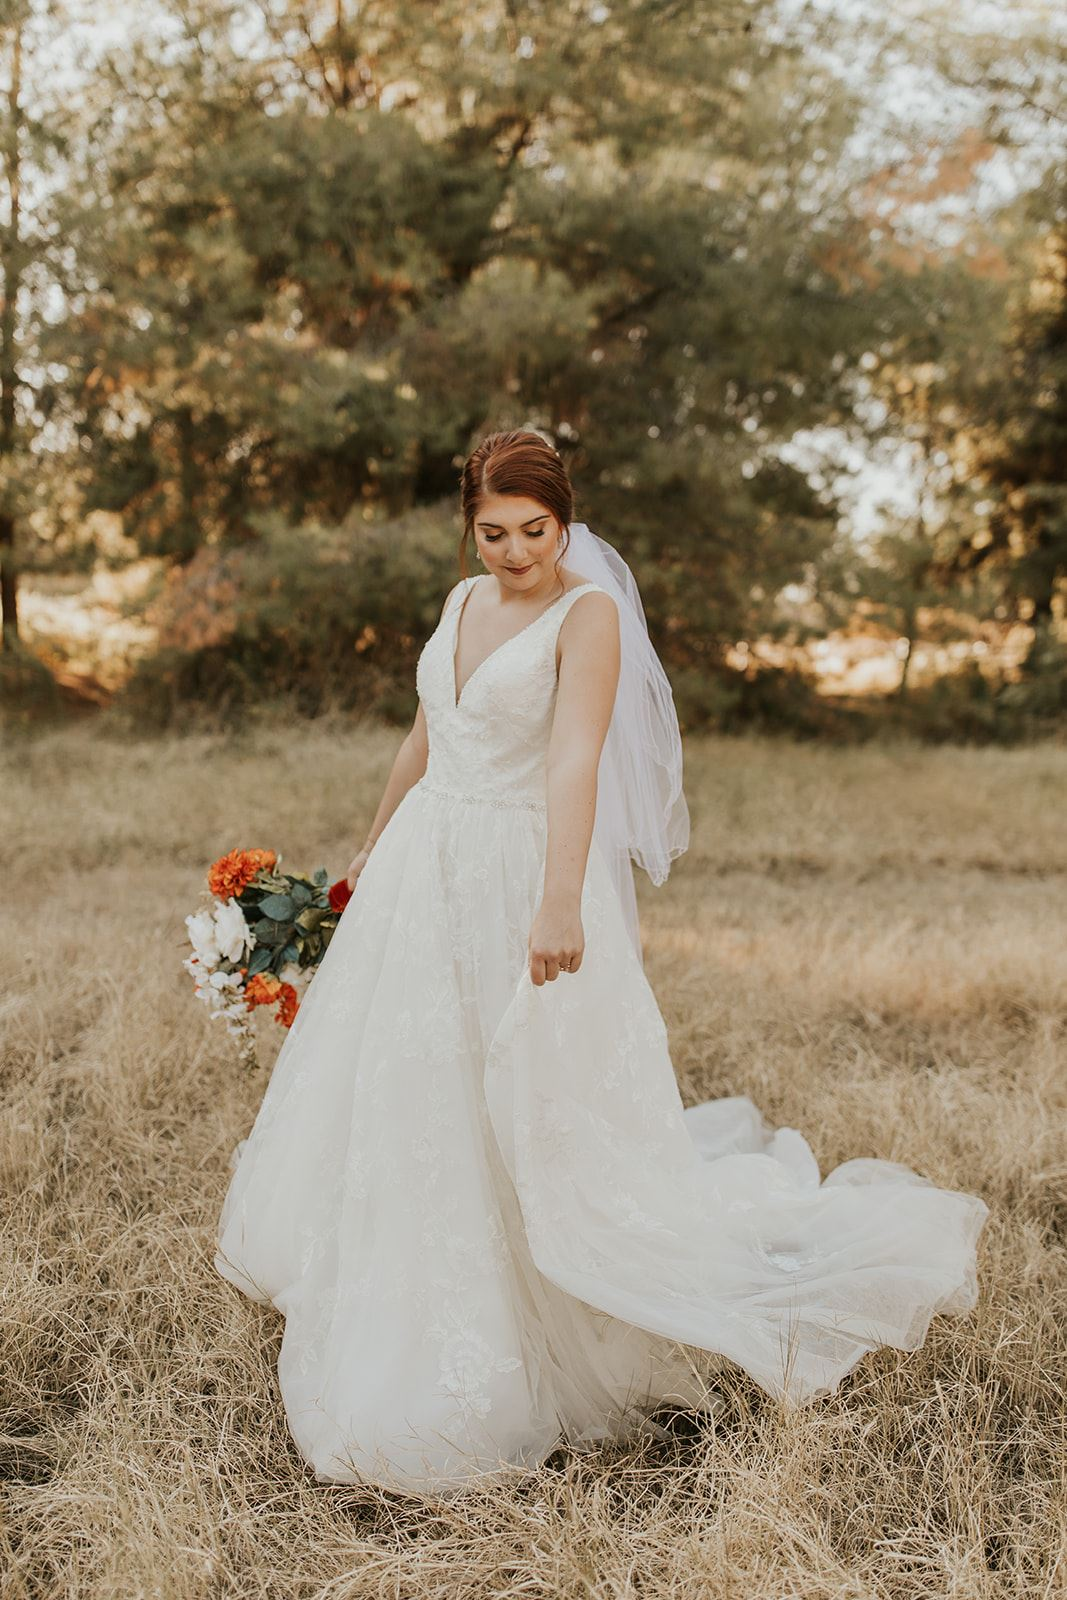 Our Brilliant Bride Kate | Rustic Charm Fall Wedding. Desktop Image